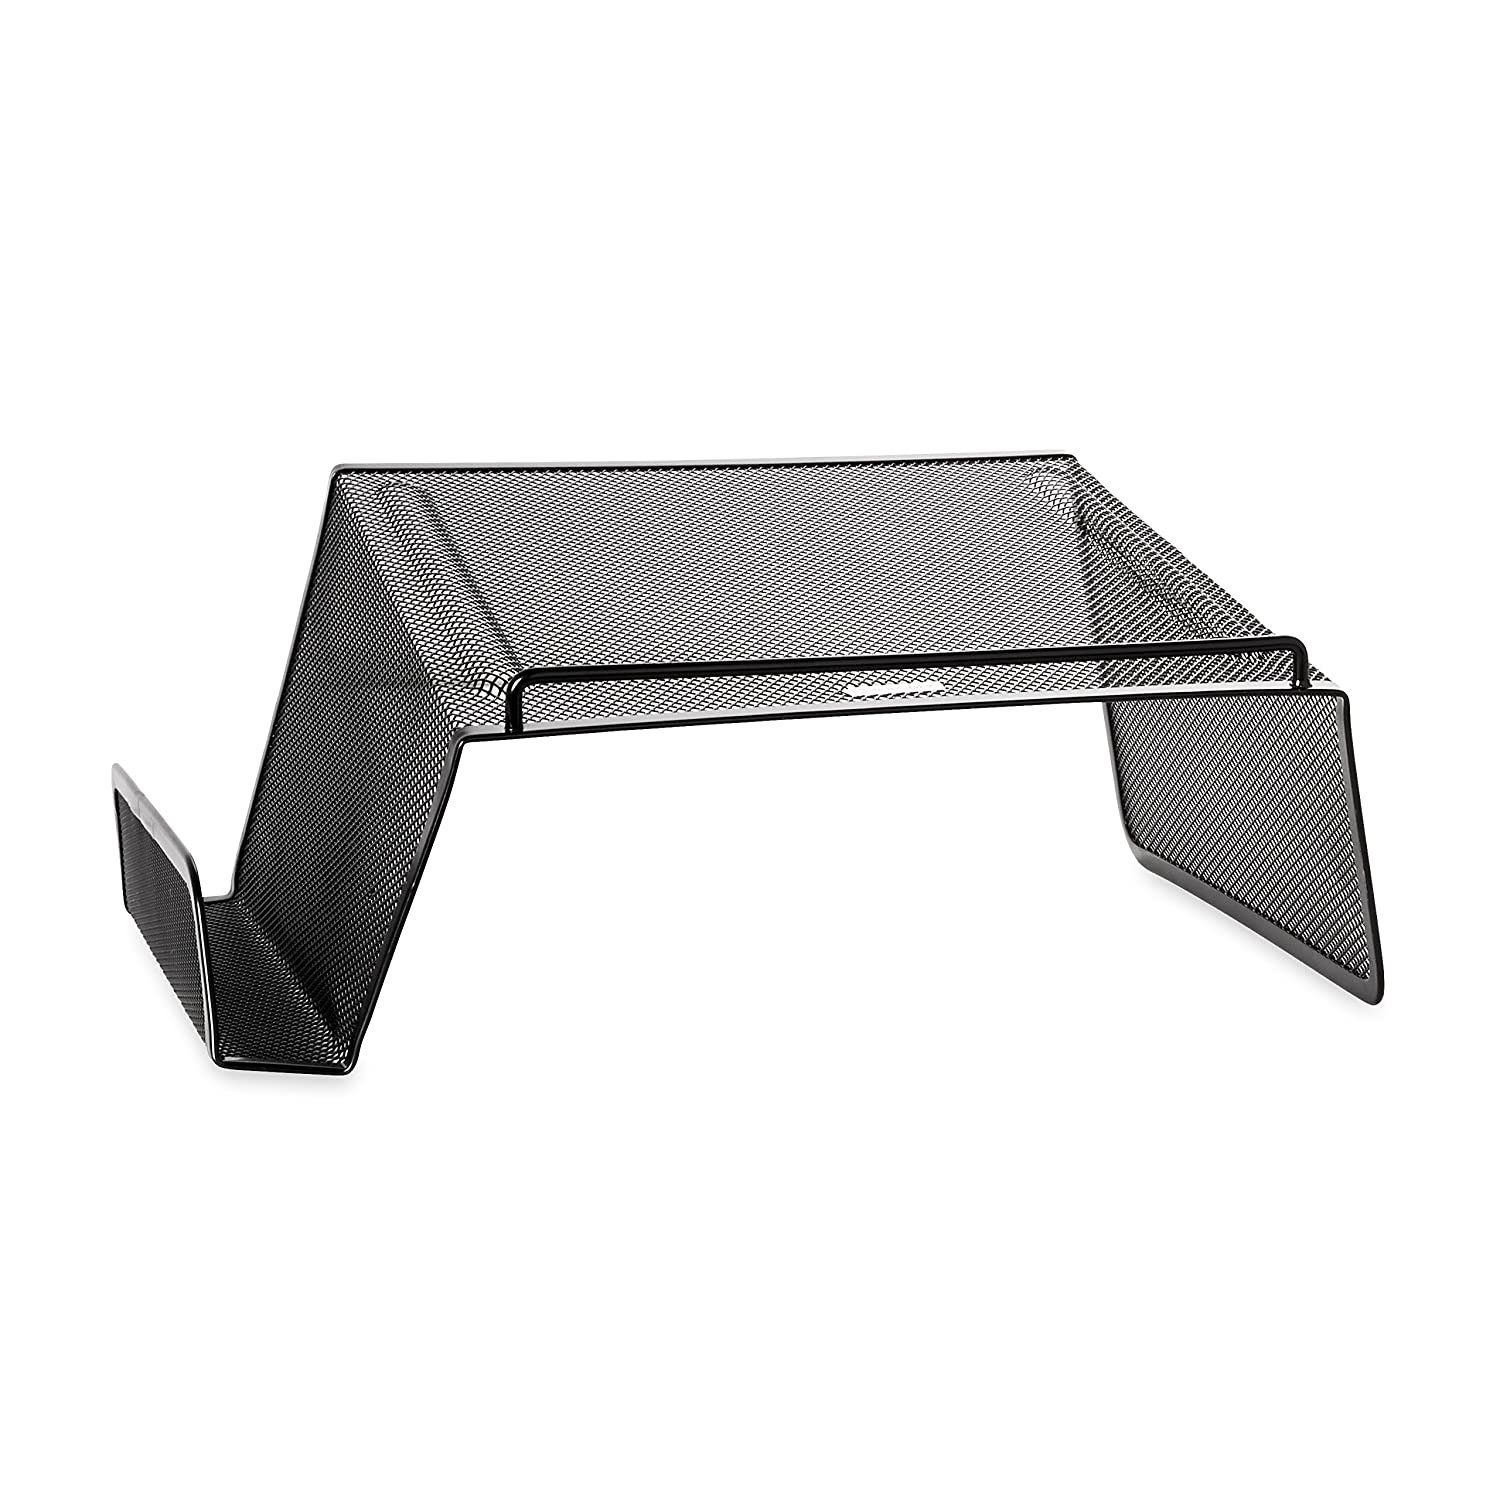 Rolodex Wood Tones Collection Printer Stand, Black (82431) Sanford